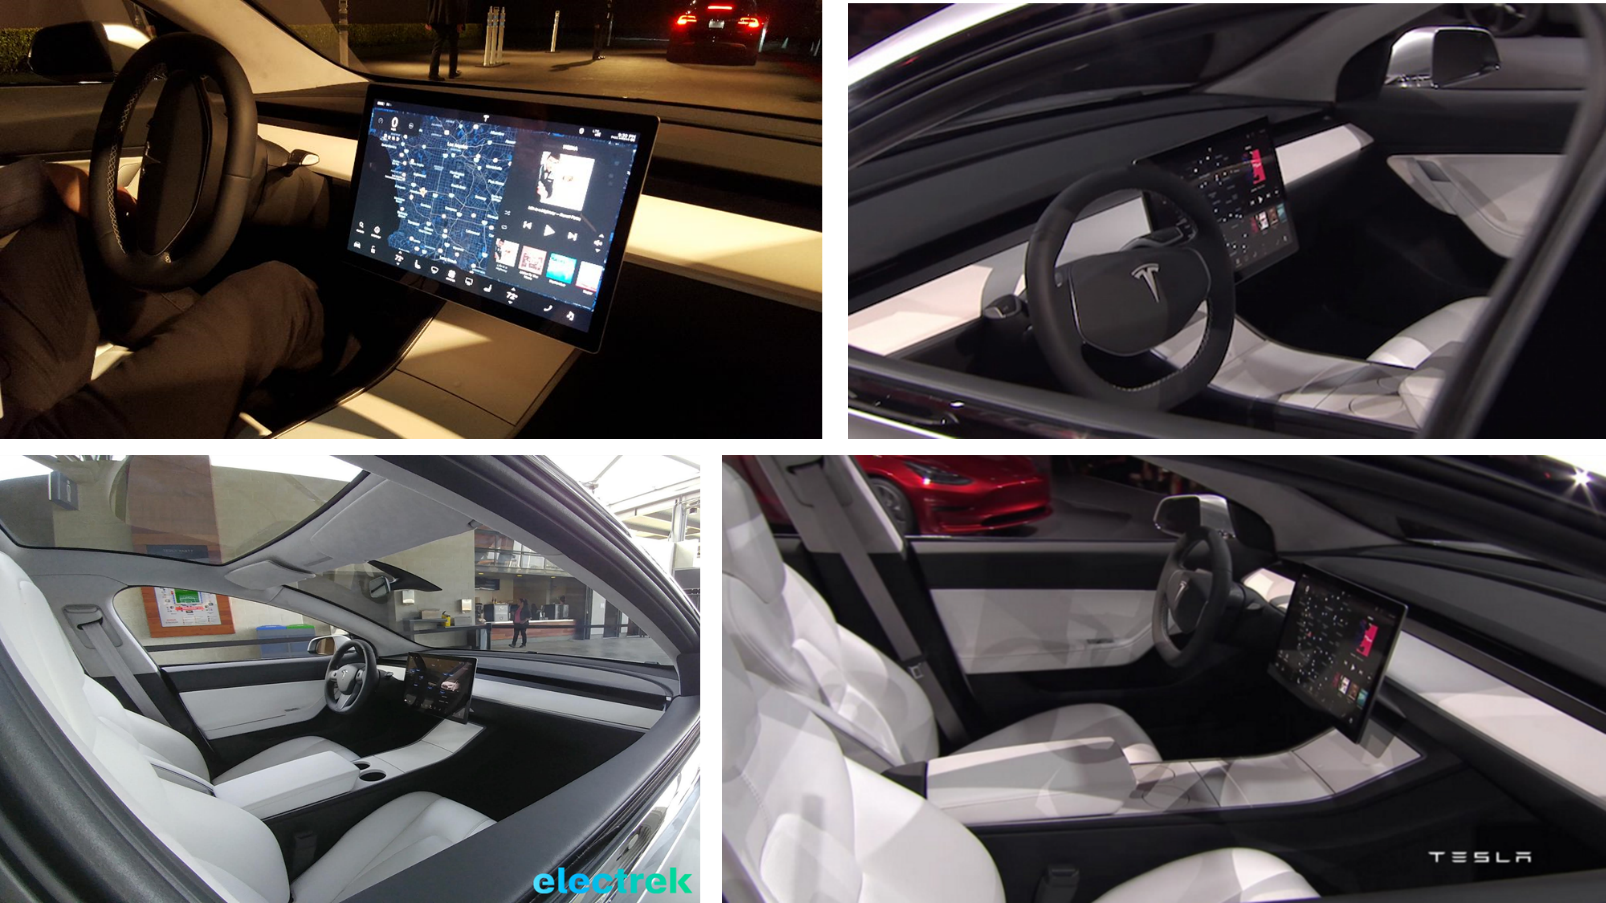 Tesla Model 3 Subjective Analysis